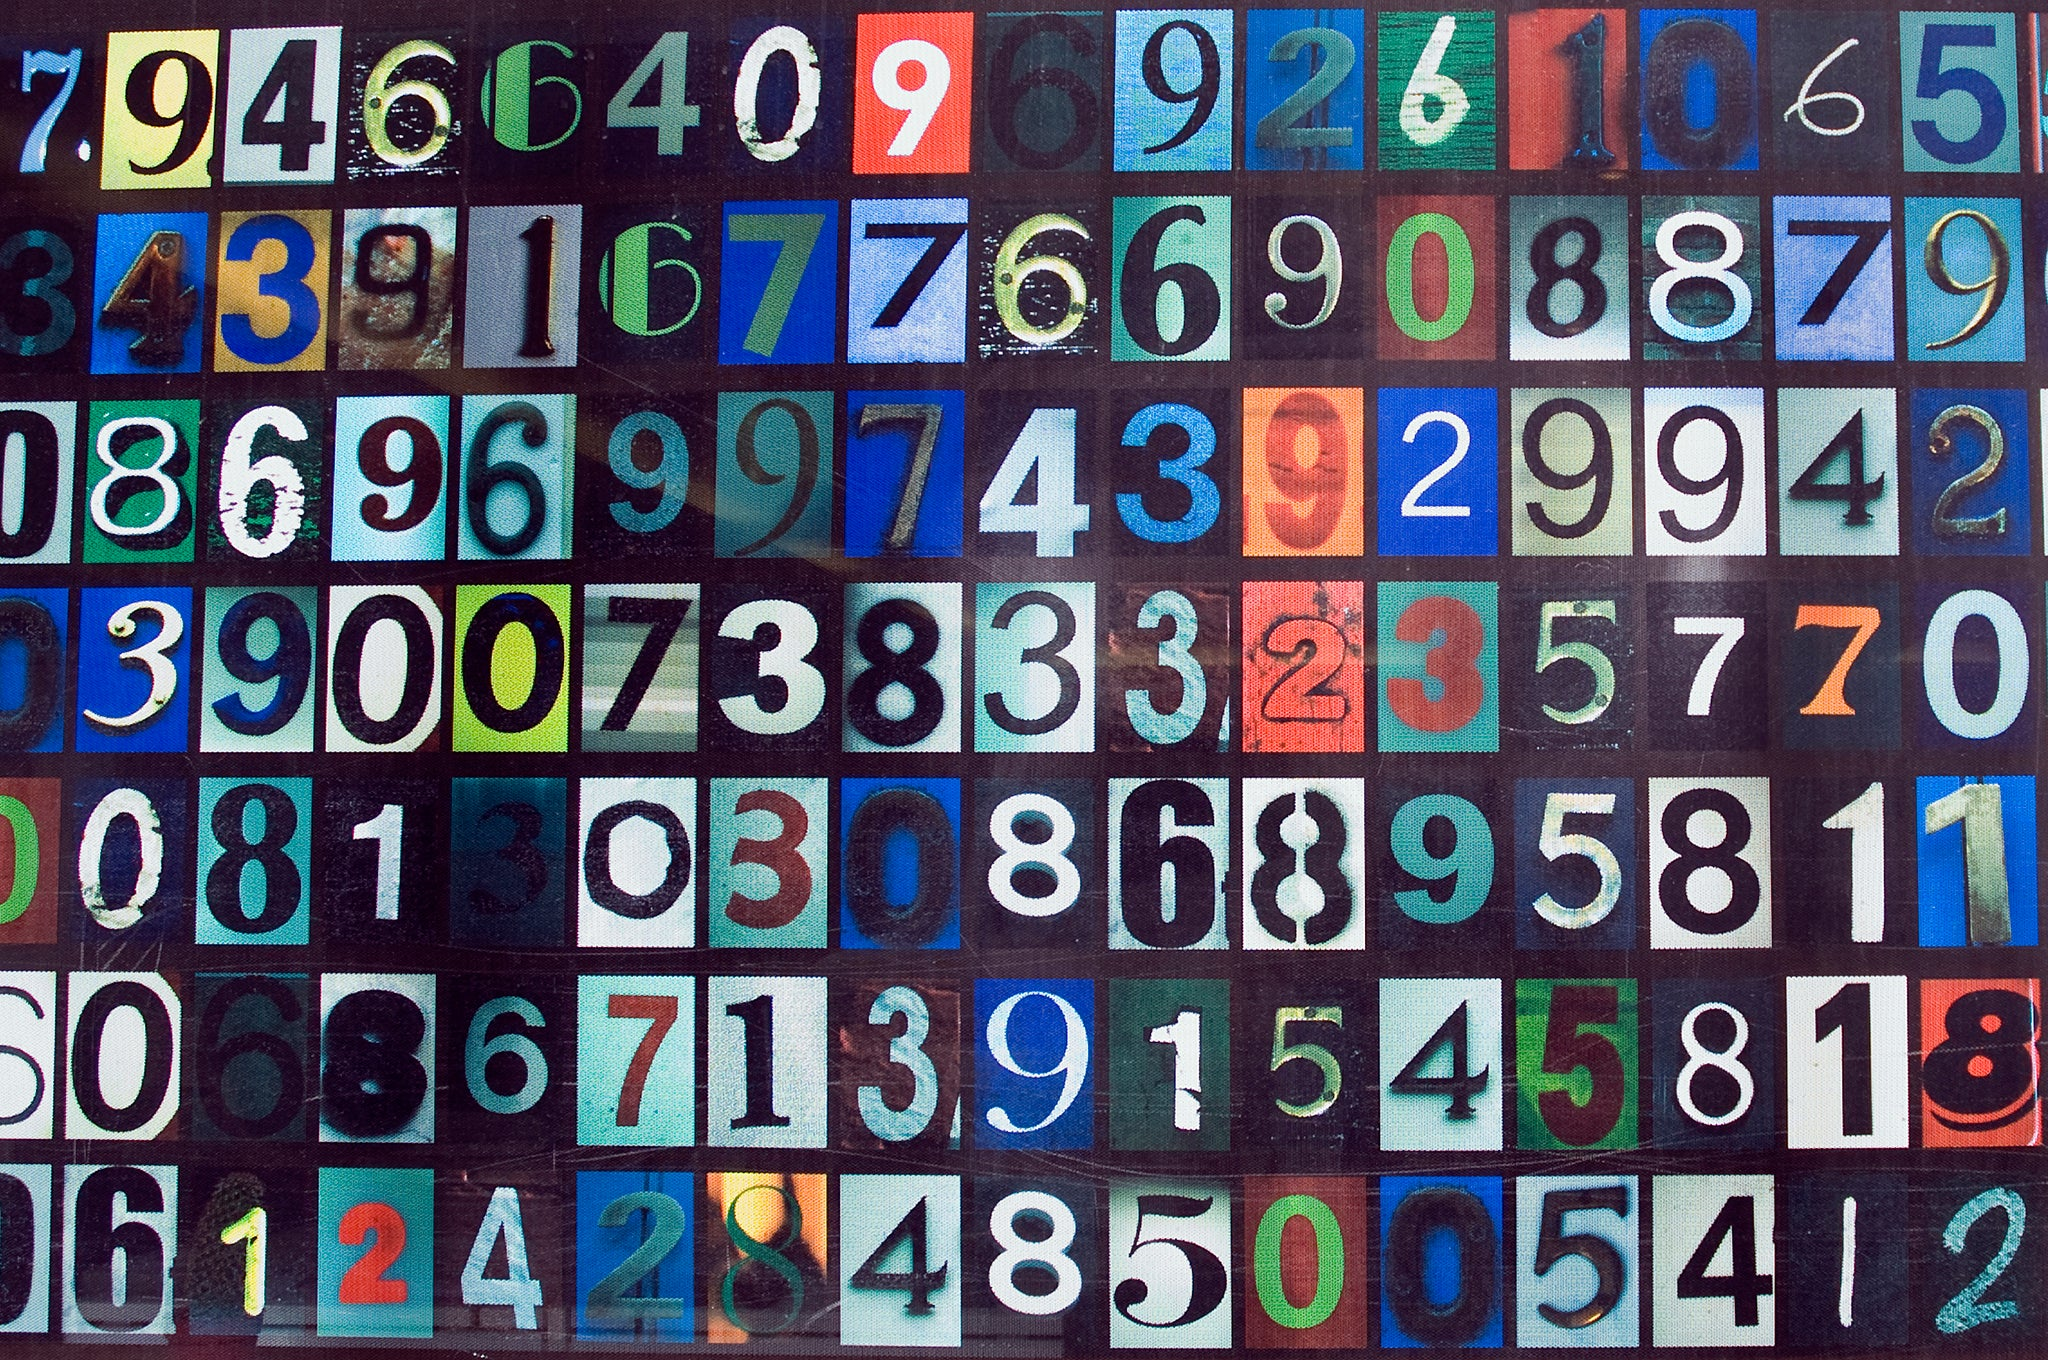 Maths experts stunned as they crack a pattern for prime numbers